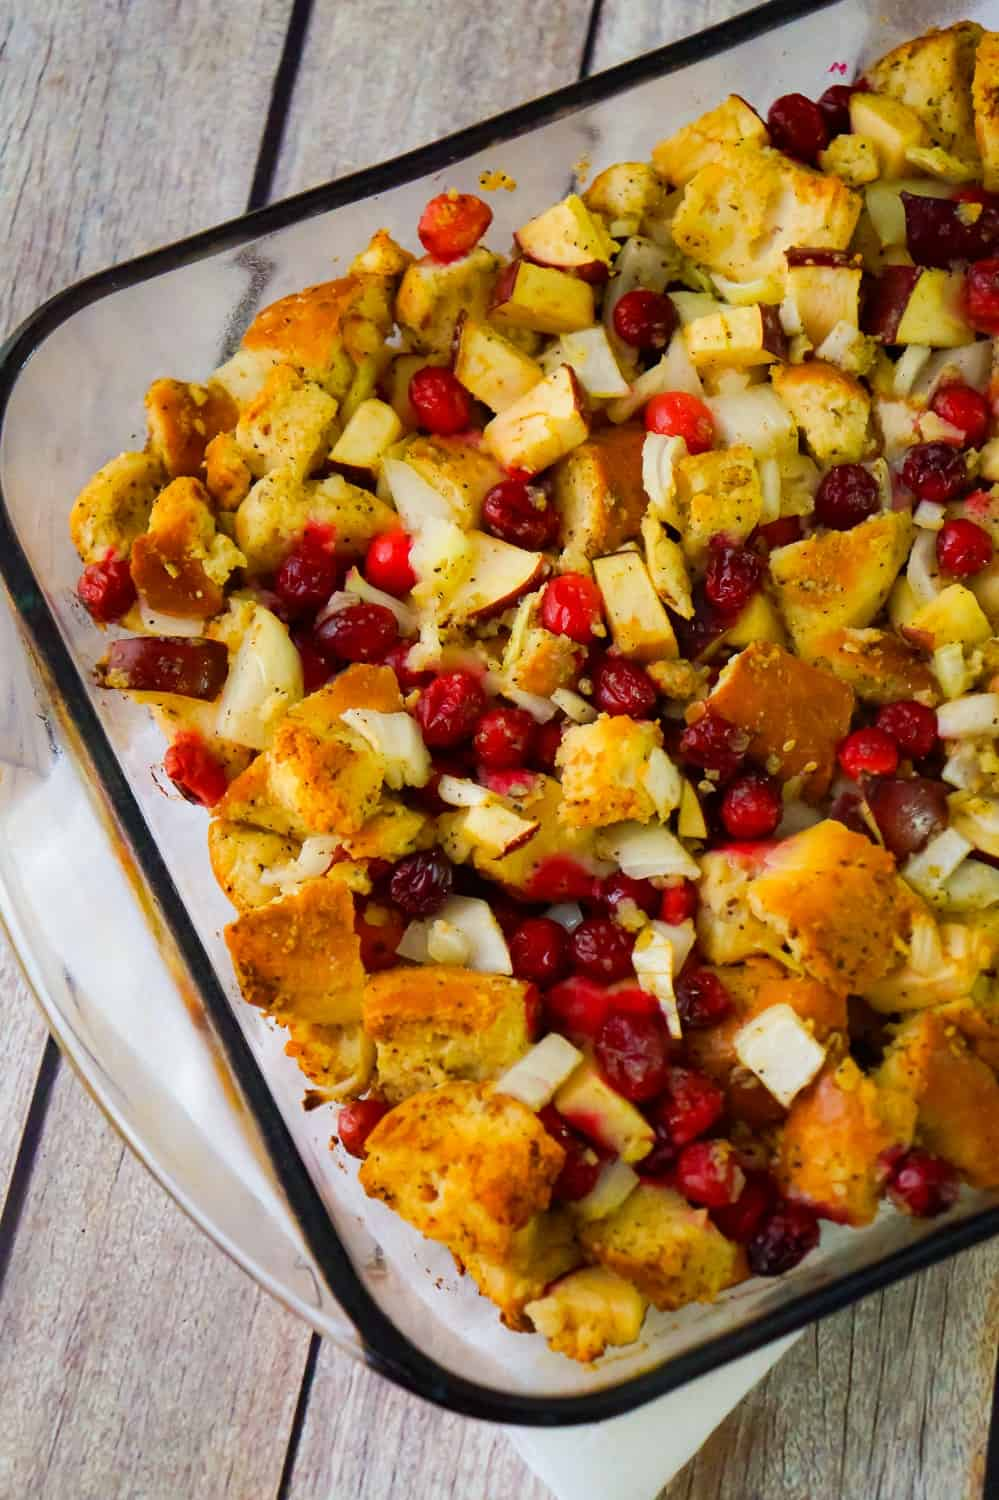 Cranberry Apple Thanksgiving Stuffing is an easy holiday side dish recipe. This baked stuffing is made with everything bagels and loaded with cranberries and diced apples.